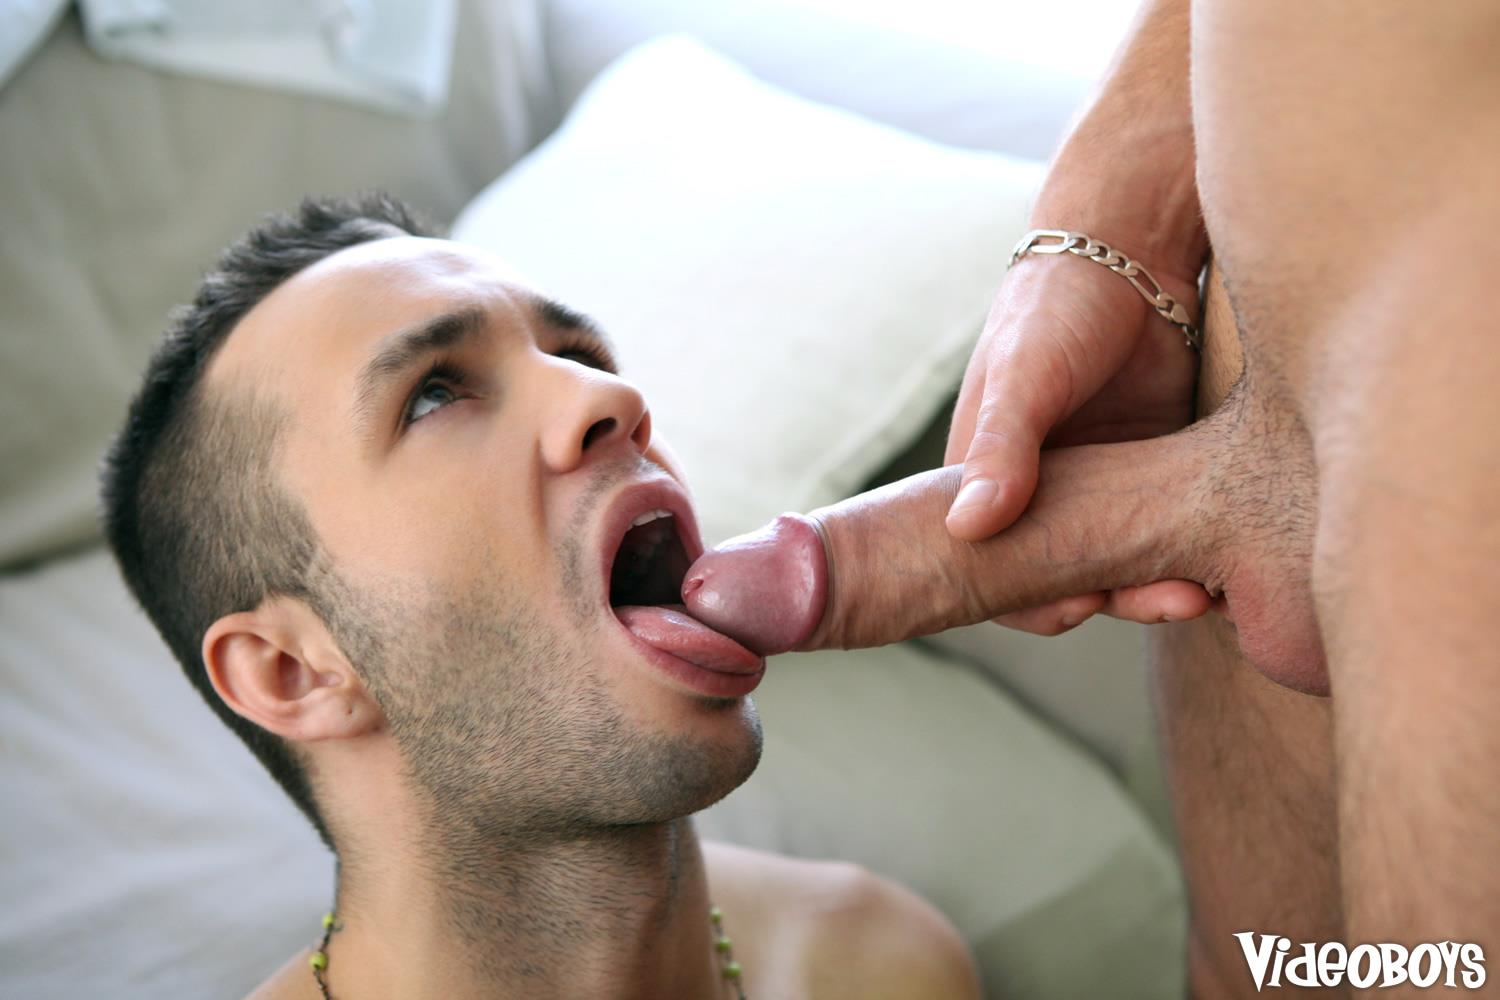 Videoboys-Marco-and-Sonny-Real-Life-Boyfriends-Barebacking-Big-Uncut-Cocks-Amateur-Gay-Porn-07 Real Life Amateur Twink Boyfreinds Fucking Bareback With Big Uncut Cocks